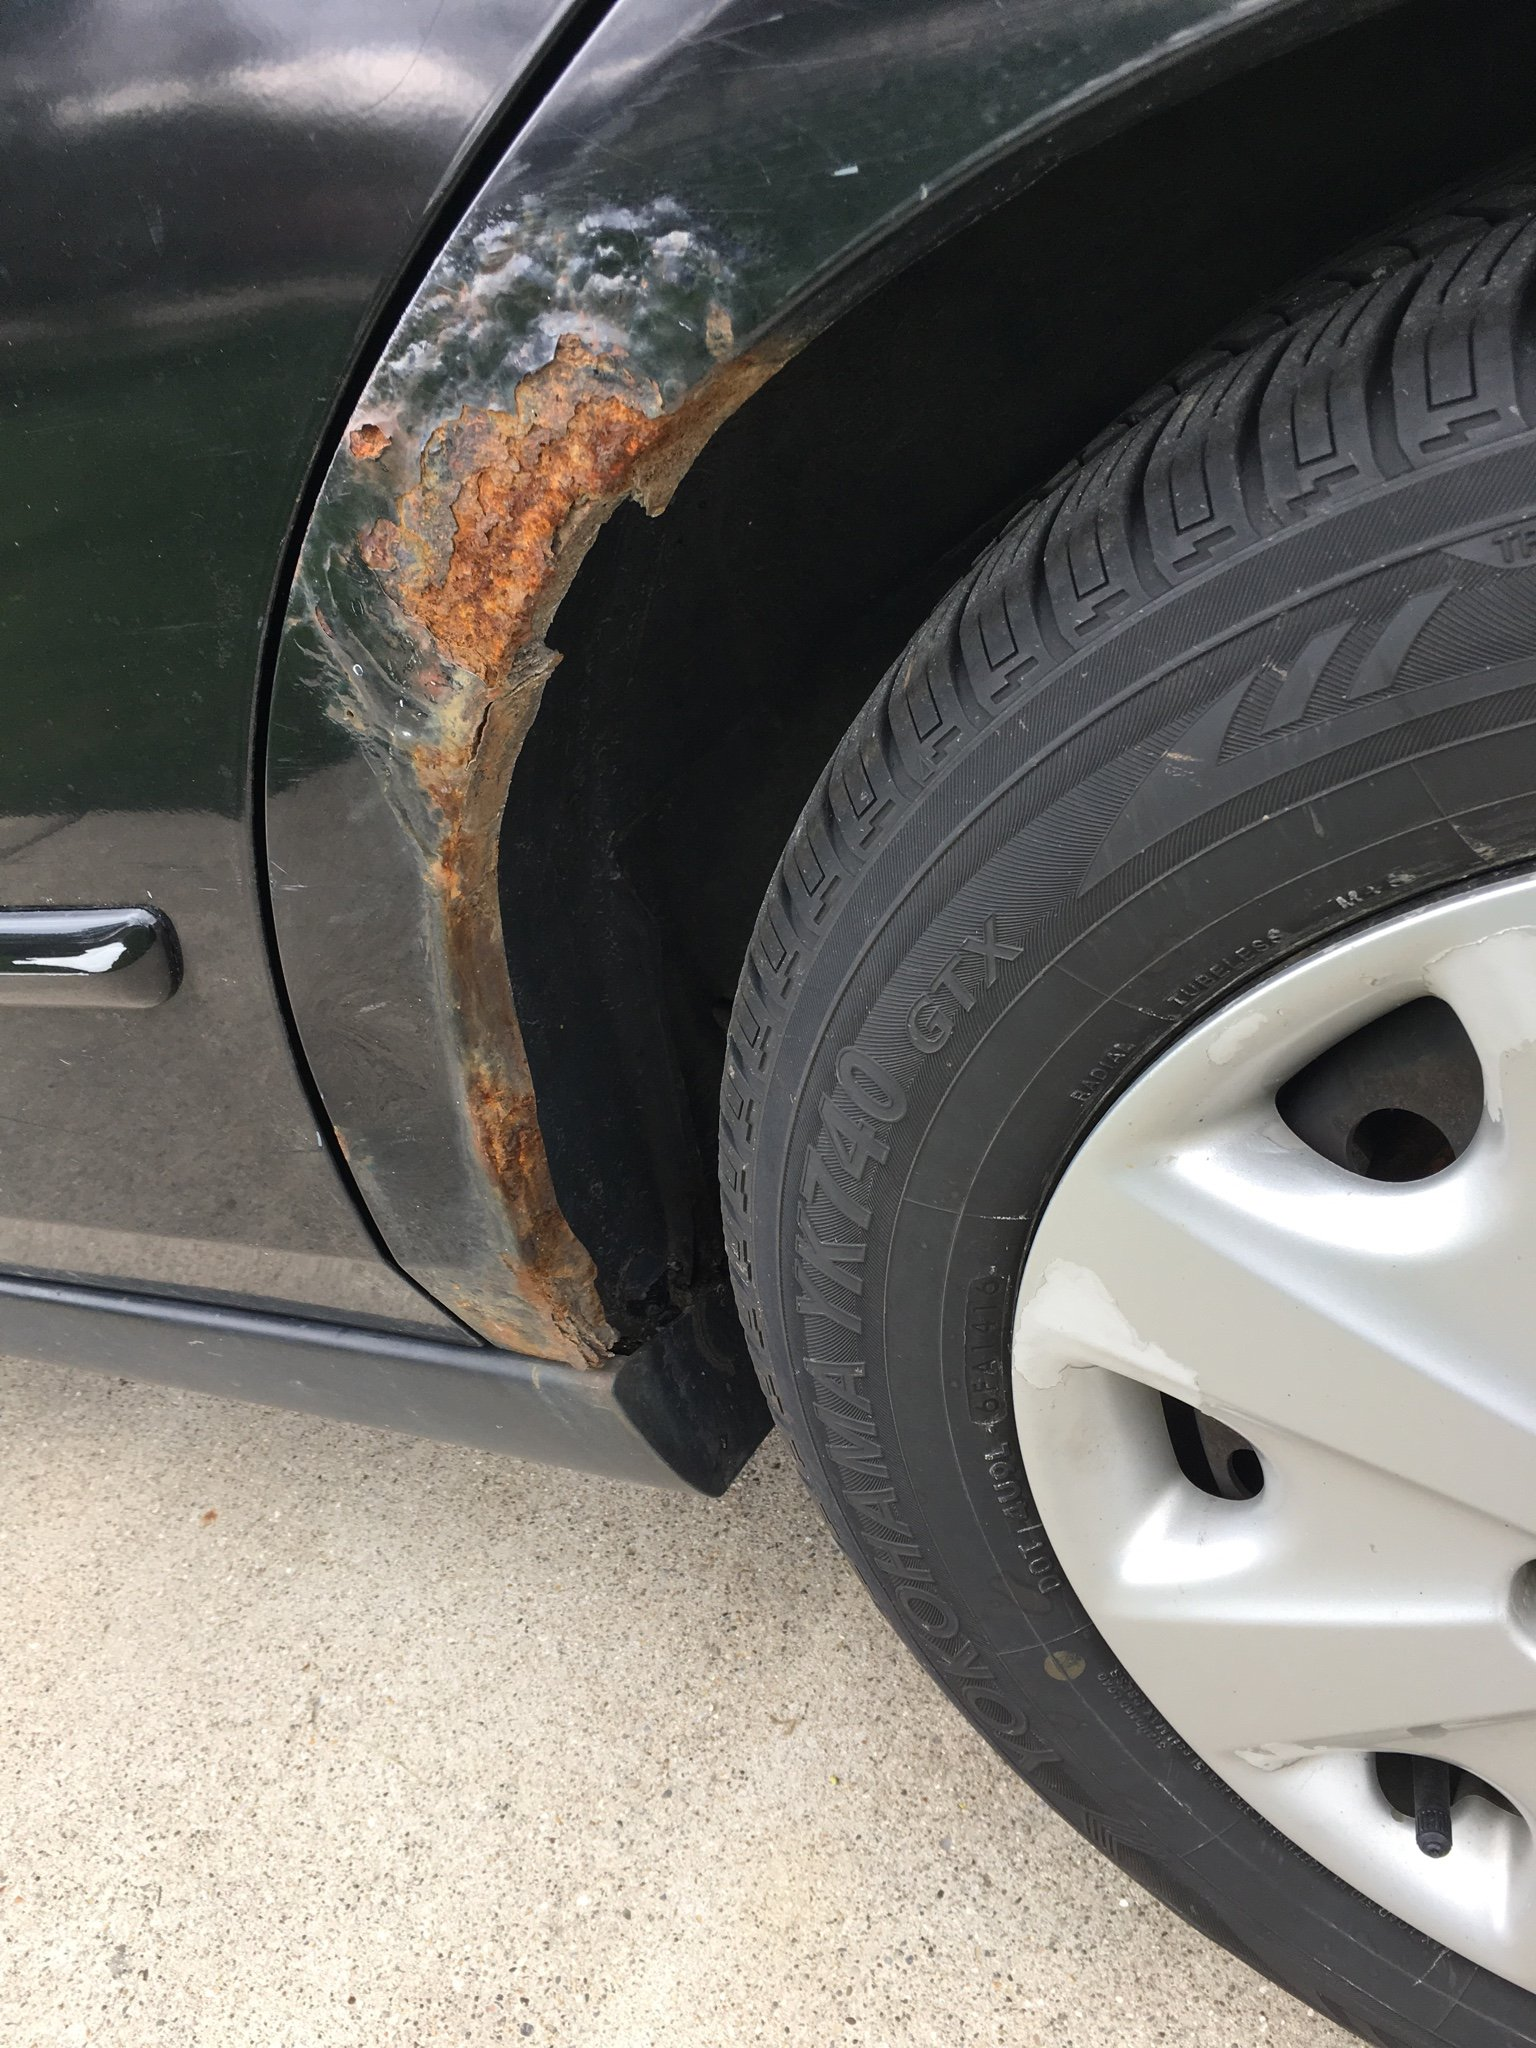 I Have Some Pretty Bad Rust On My Quarter Panel Was Wondering If Should Try And Get Fixed Or Just Replace It